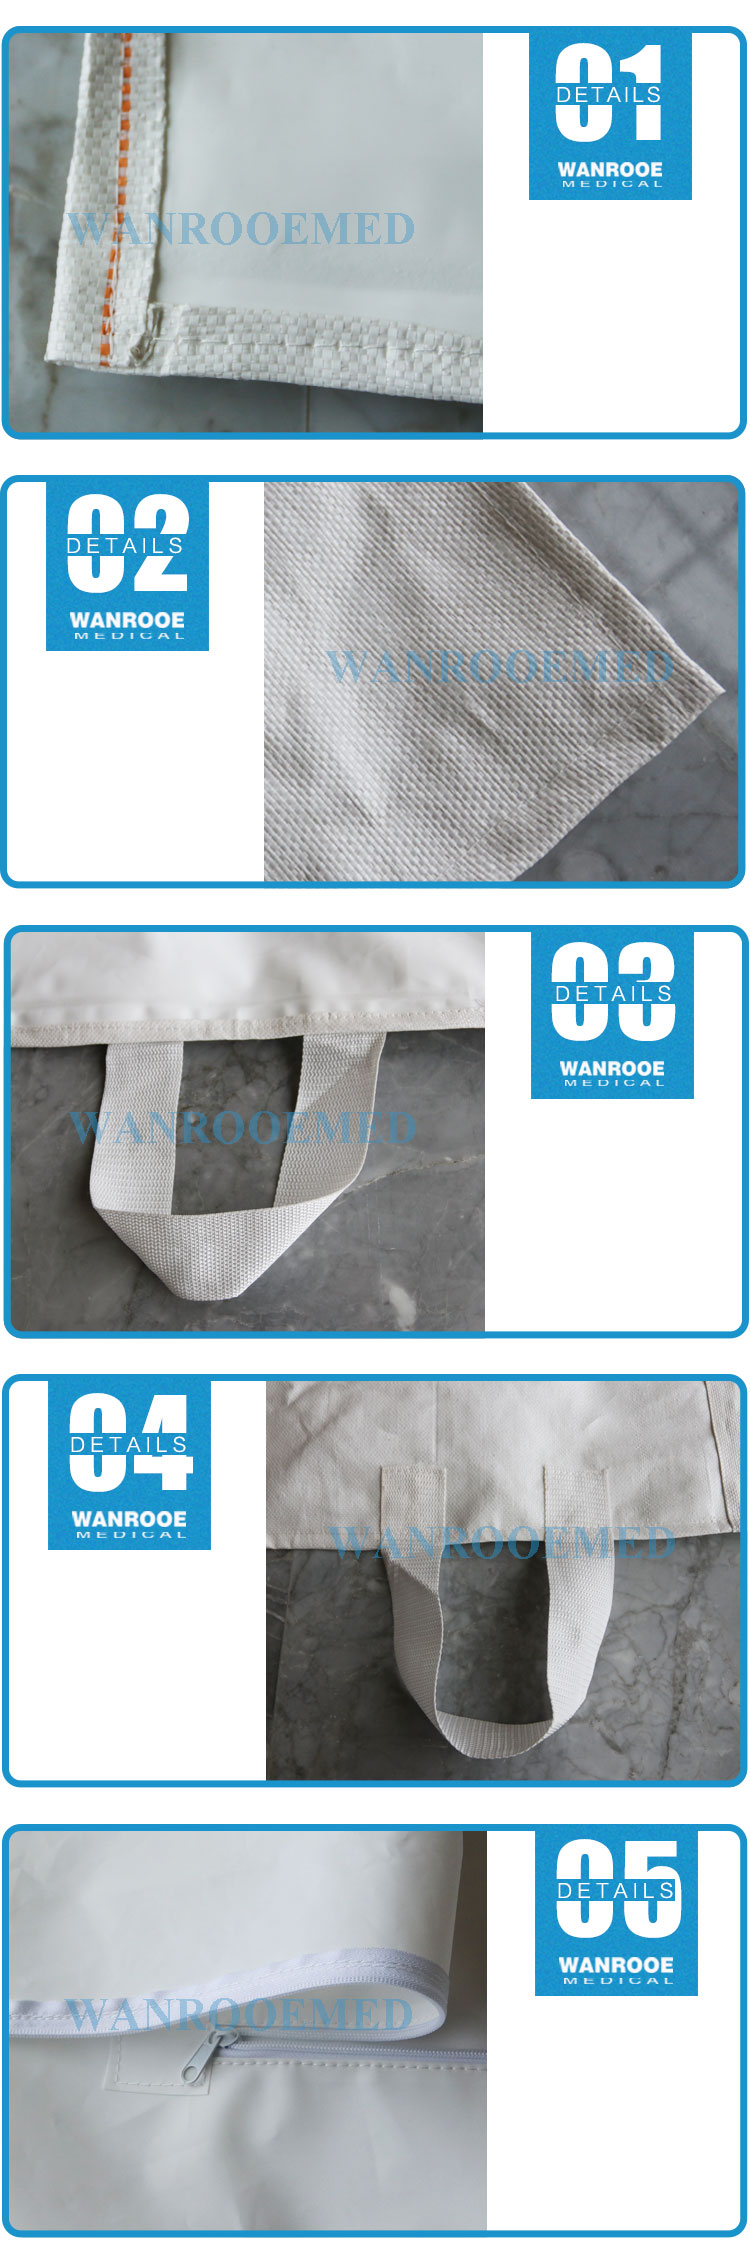 Heavy Duty Body Bag, Funeral Corpse Bag, PP PEVA Cadaver Bag, Body Bag, Corpse Bag, Three Layer Body Bag